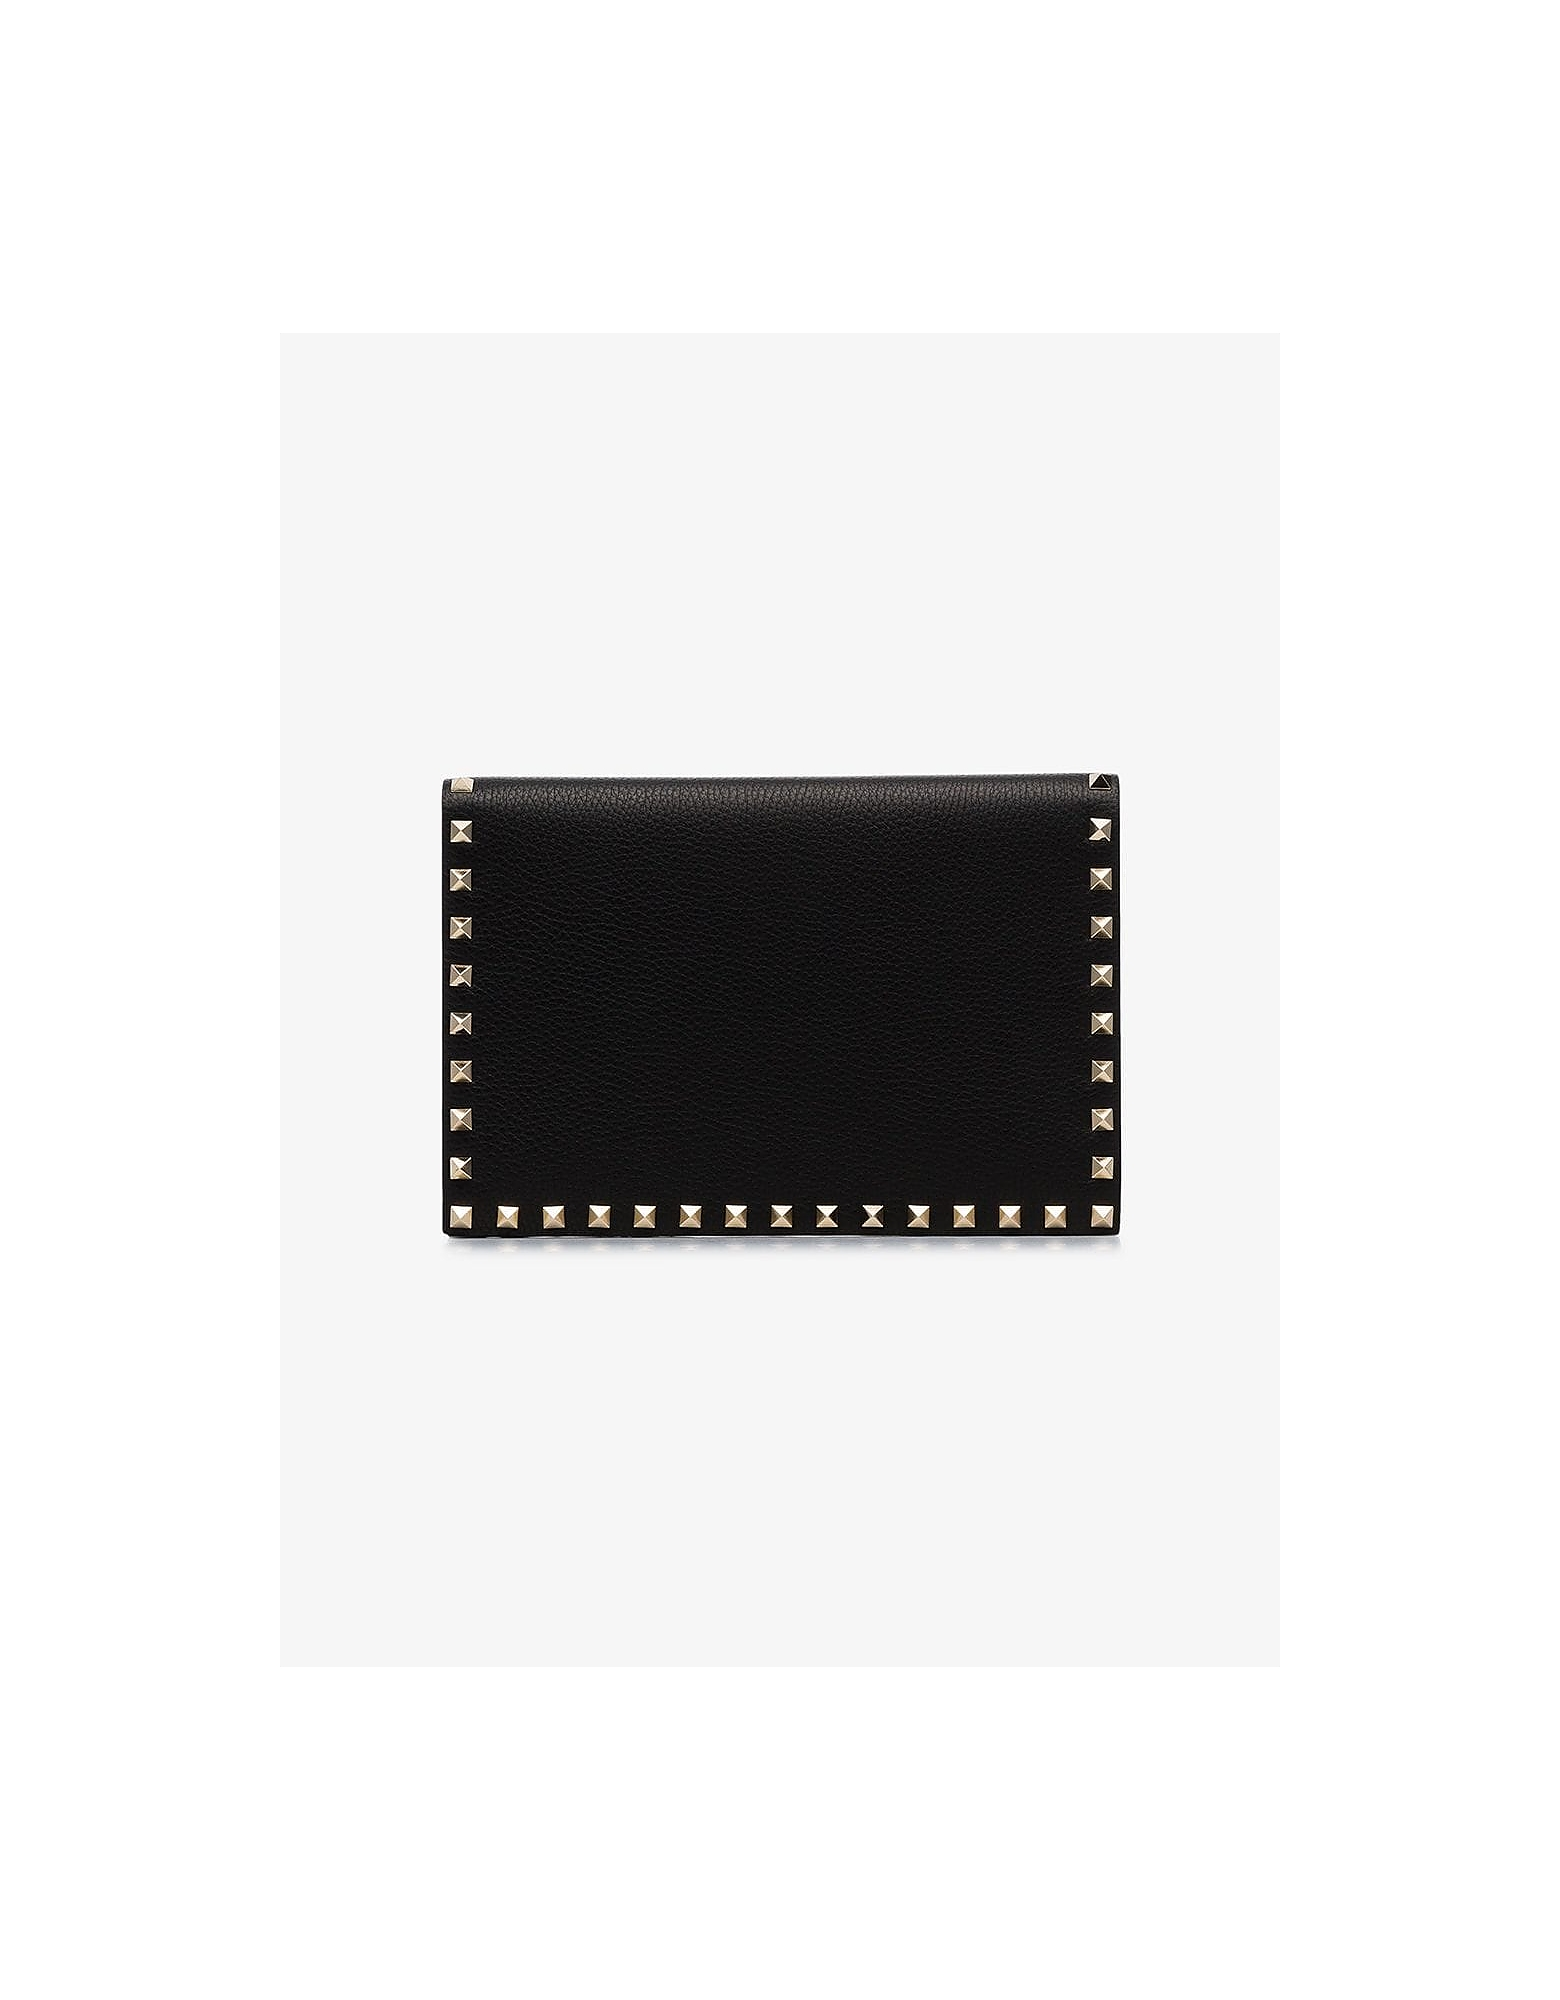 Valentino Designer Handbags, Black garavani rockstud leather clutch bag